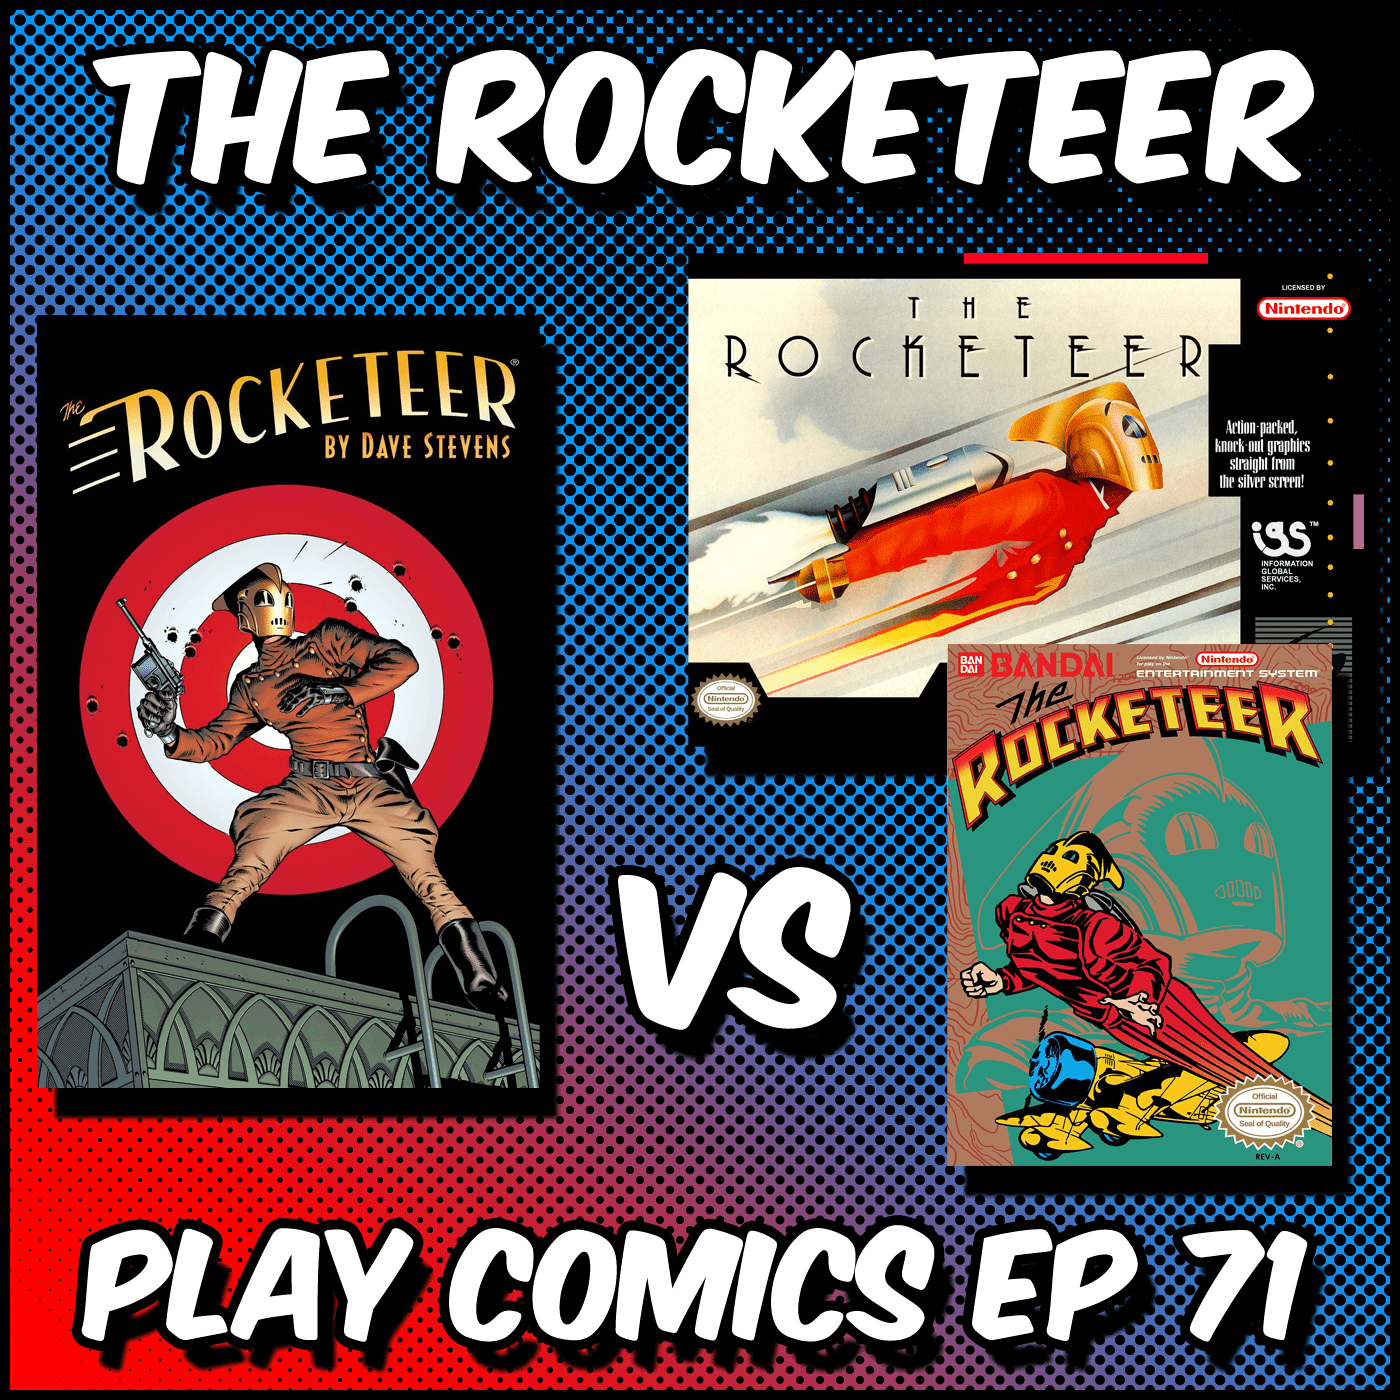 The Rocketeer with Derek Graziano (Rolling Misadventures)